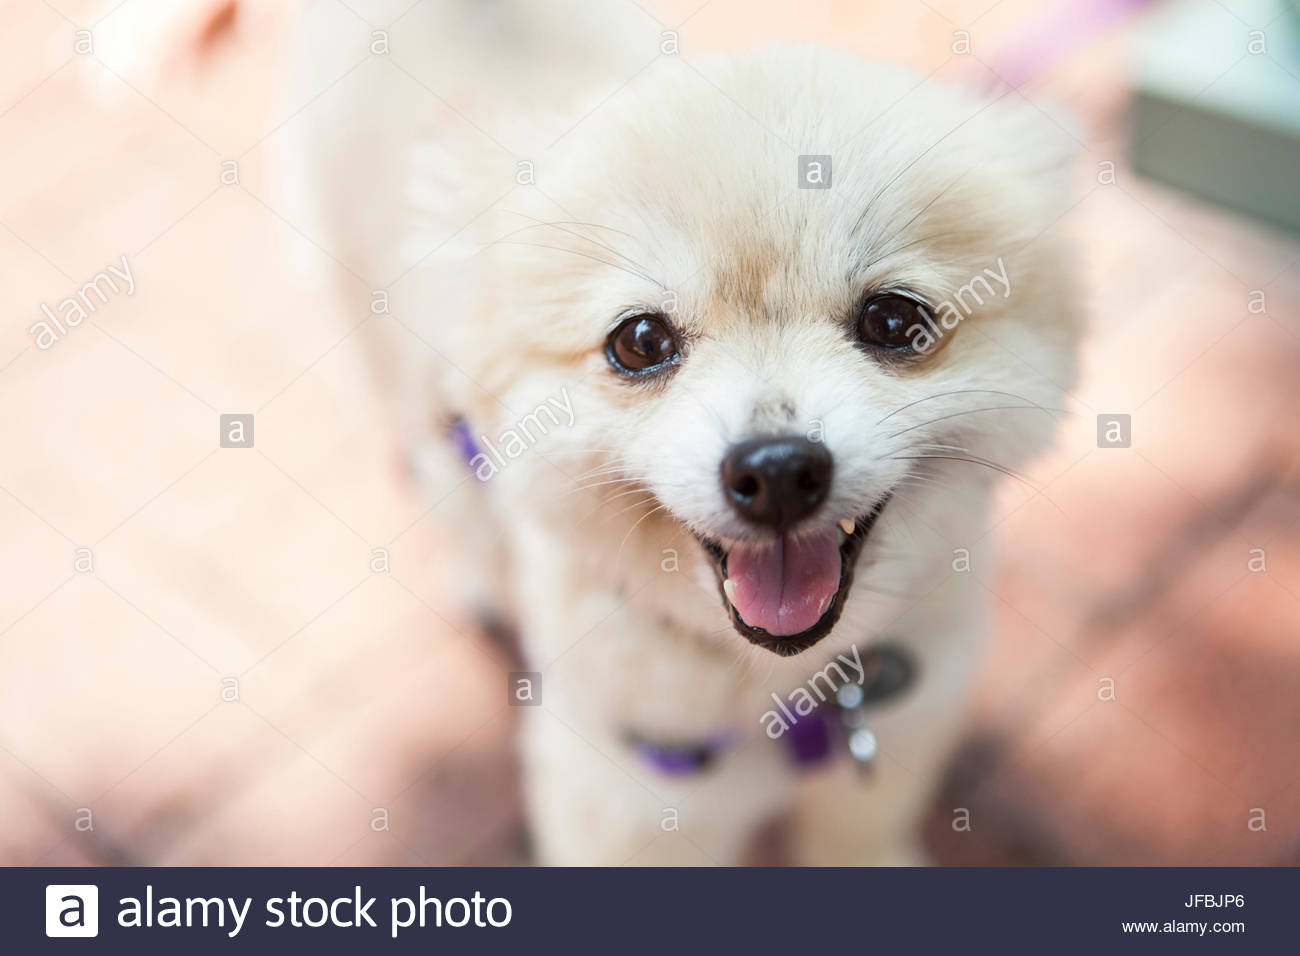 A rescued Pomeranian smiles at the camera at an adoption event in Virginia. - Stock Image